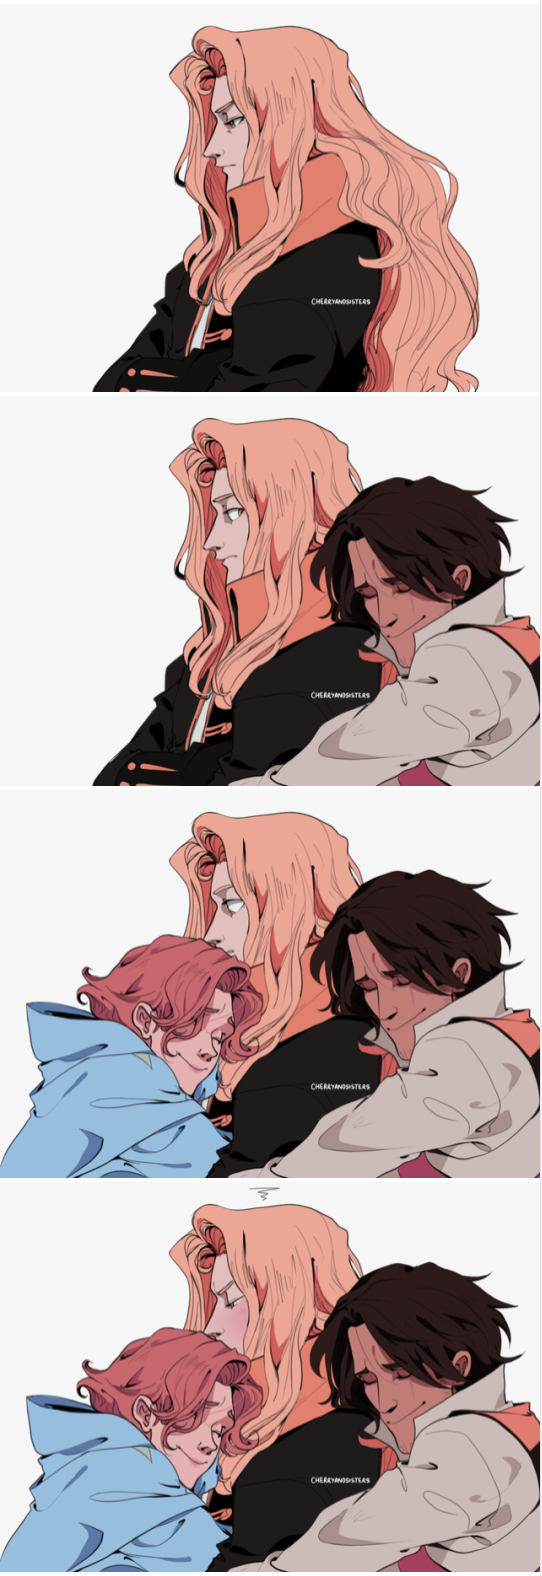 Castlevania protagonists hugging and being cute in 2020